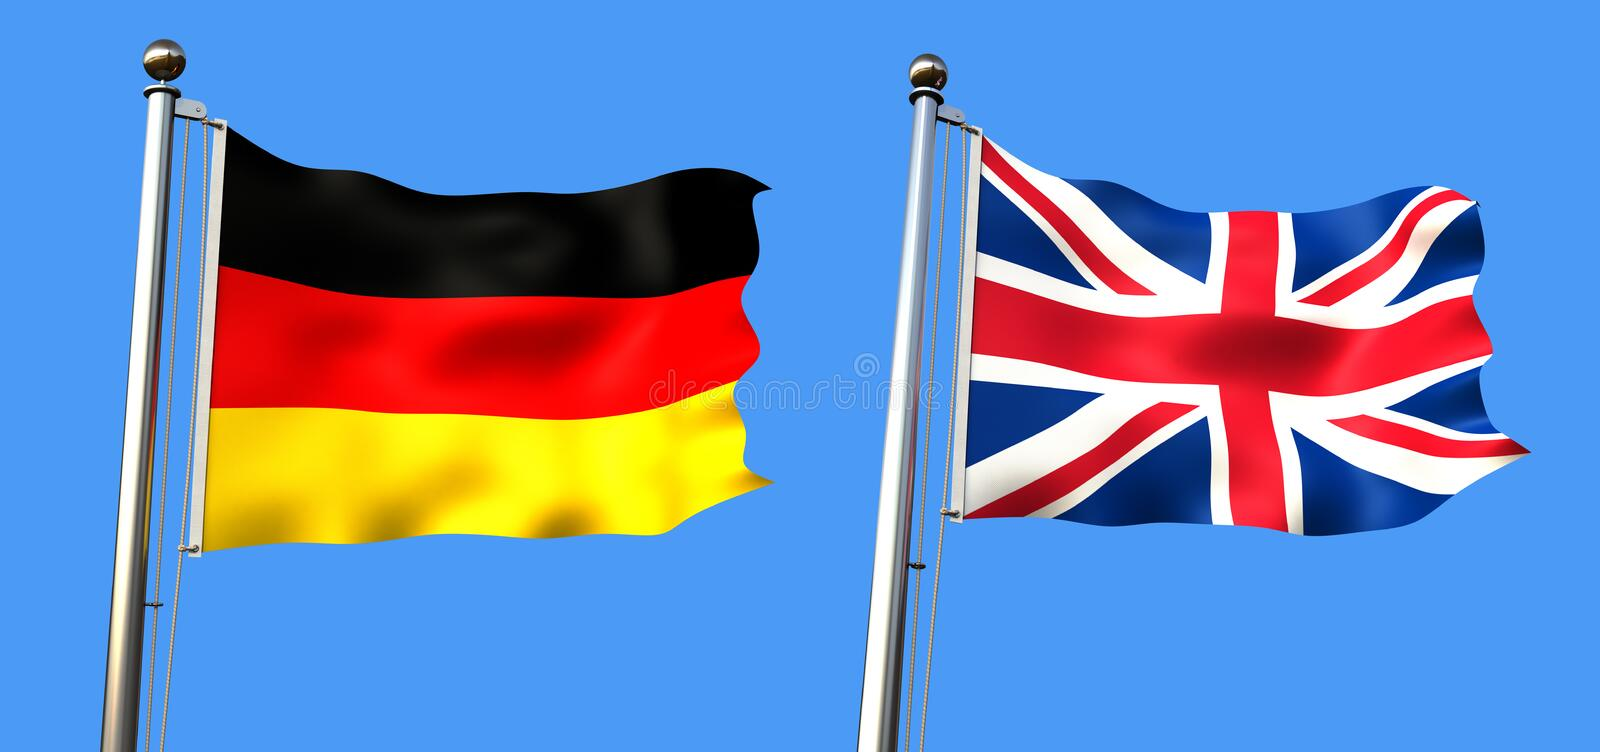 Flag of united kingdom and germany. On blue background with visible fabric texture - rendering stock illustration